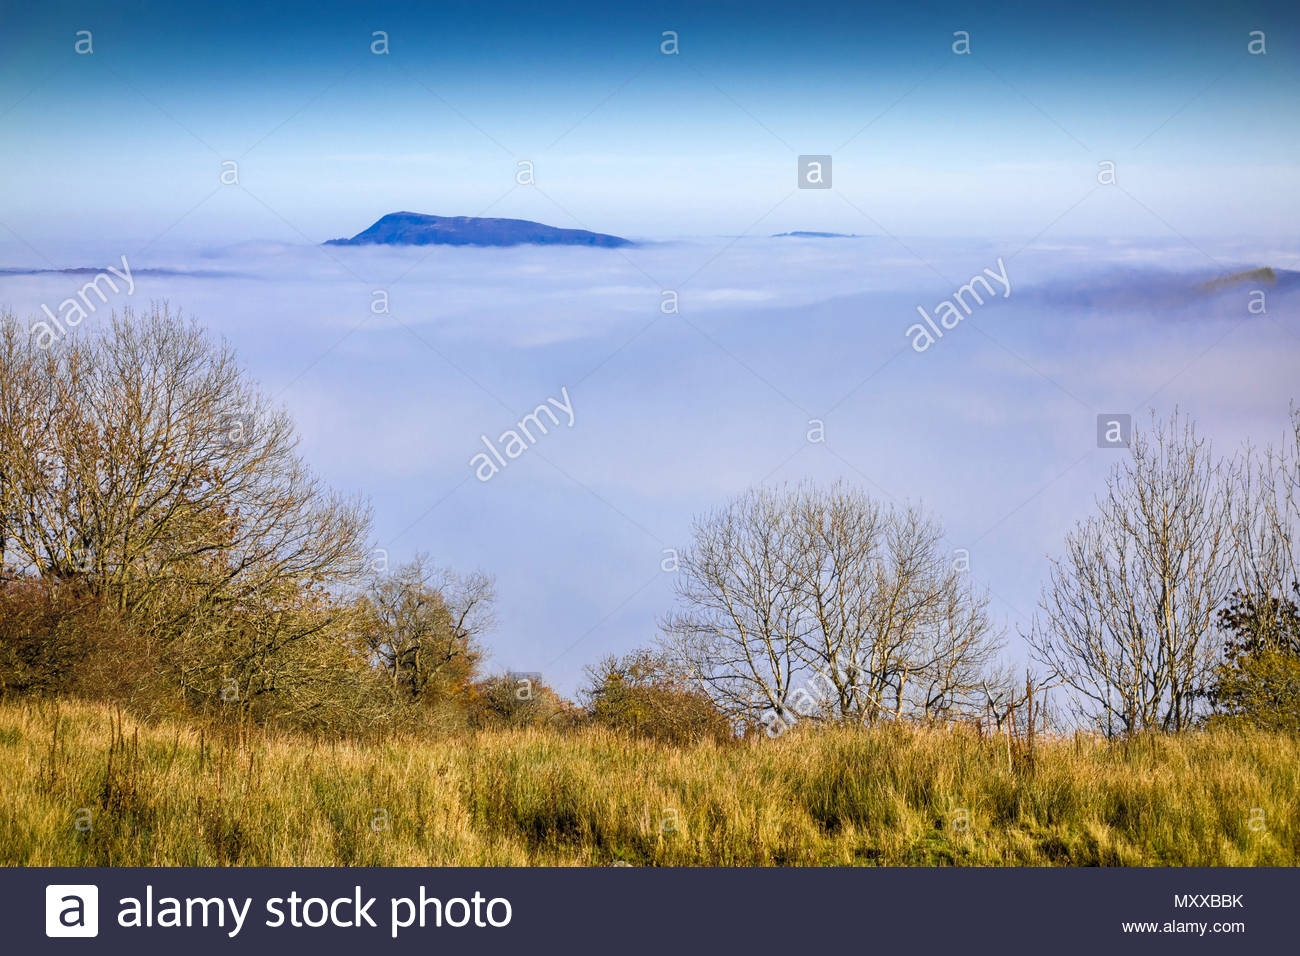 Fog caused by temperature inversion fill the River Usk valley. The peak of Great Skirrid (Big Skirrid) is in the distance; Monmouthshire, Wales, UK. Stock Photo